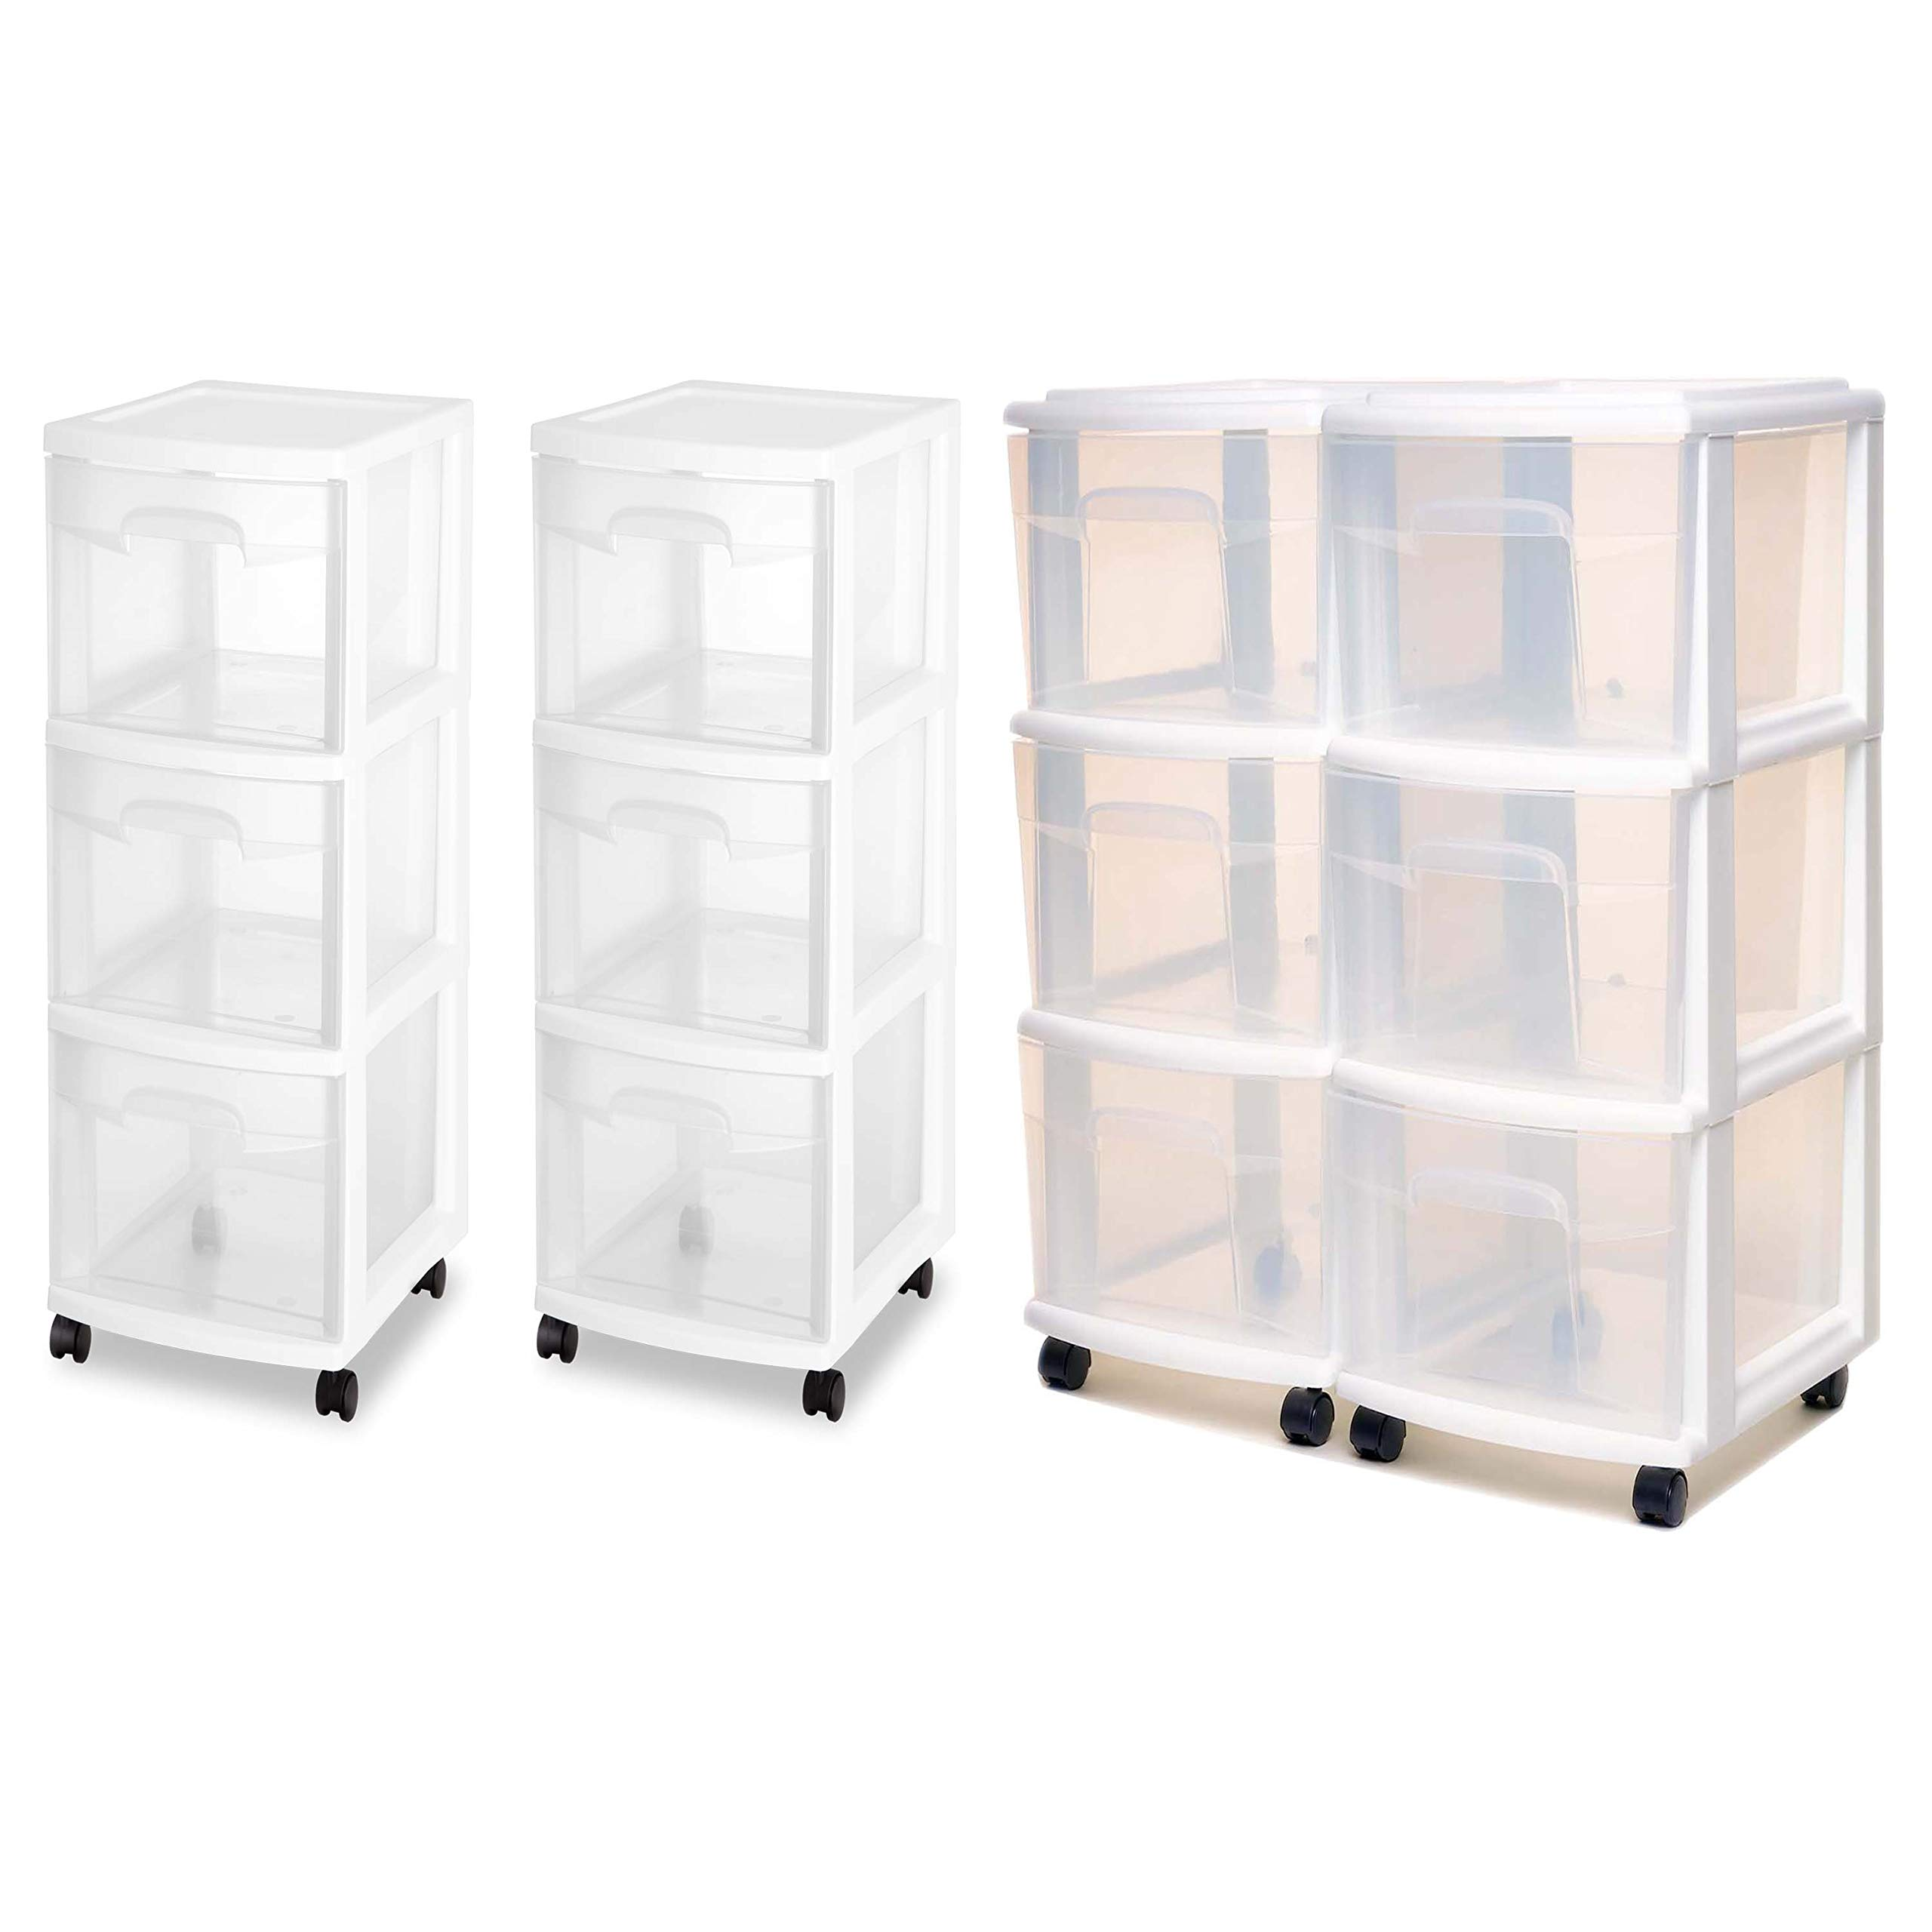 Homz 3 Drawer Medium Cart with Casters, Set of 2 Bundle with Sterilite, 3 Drawer Cart in 2-Count